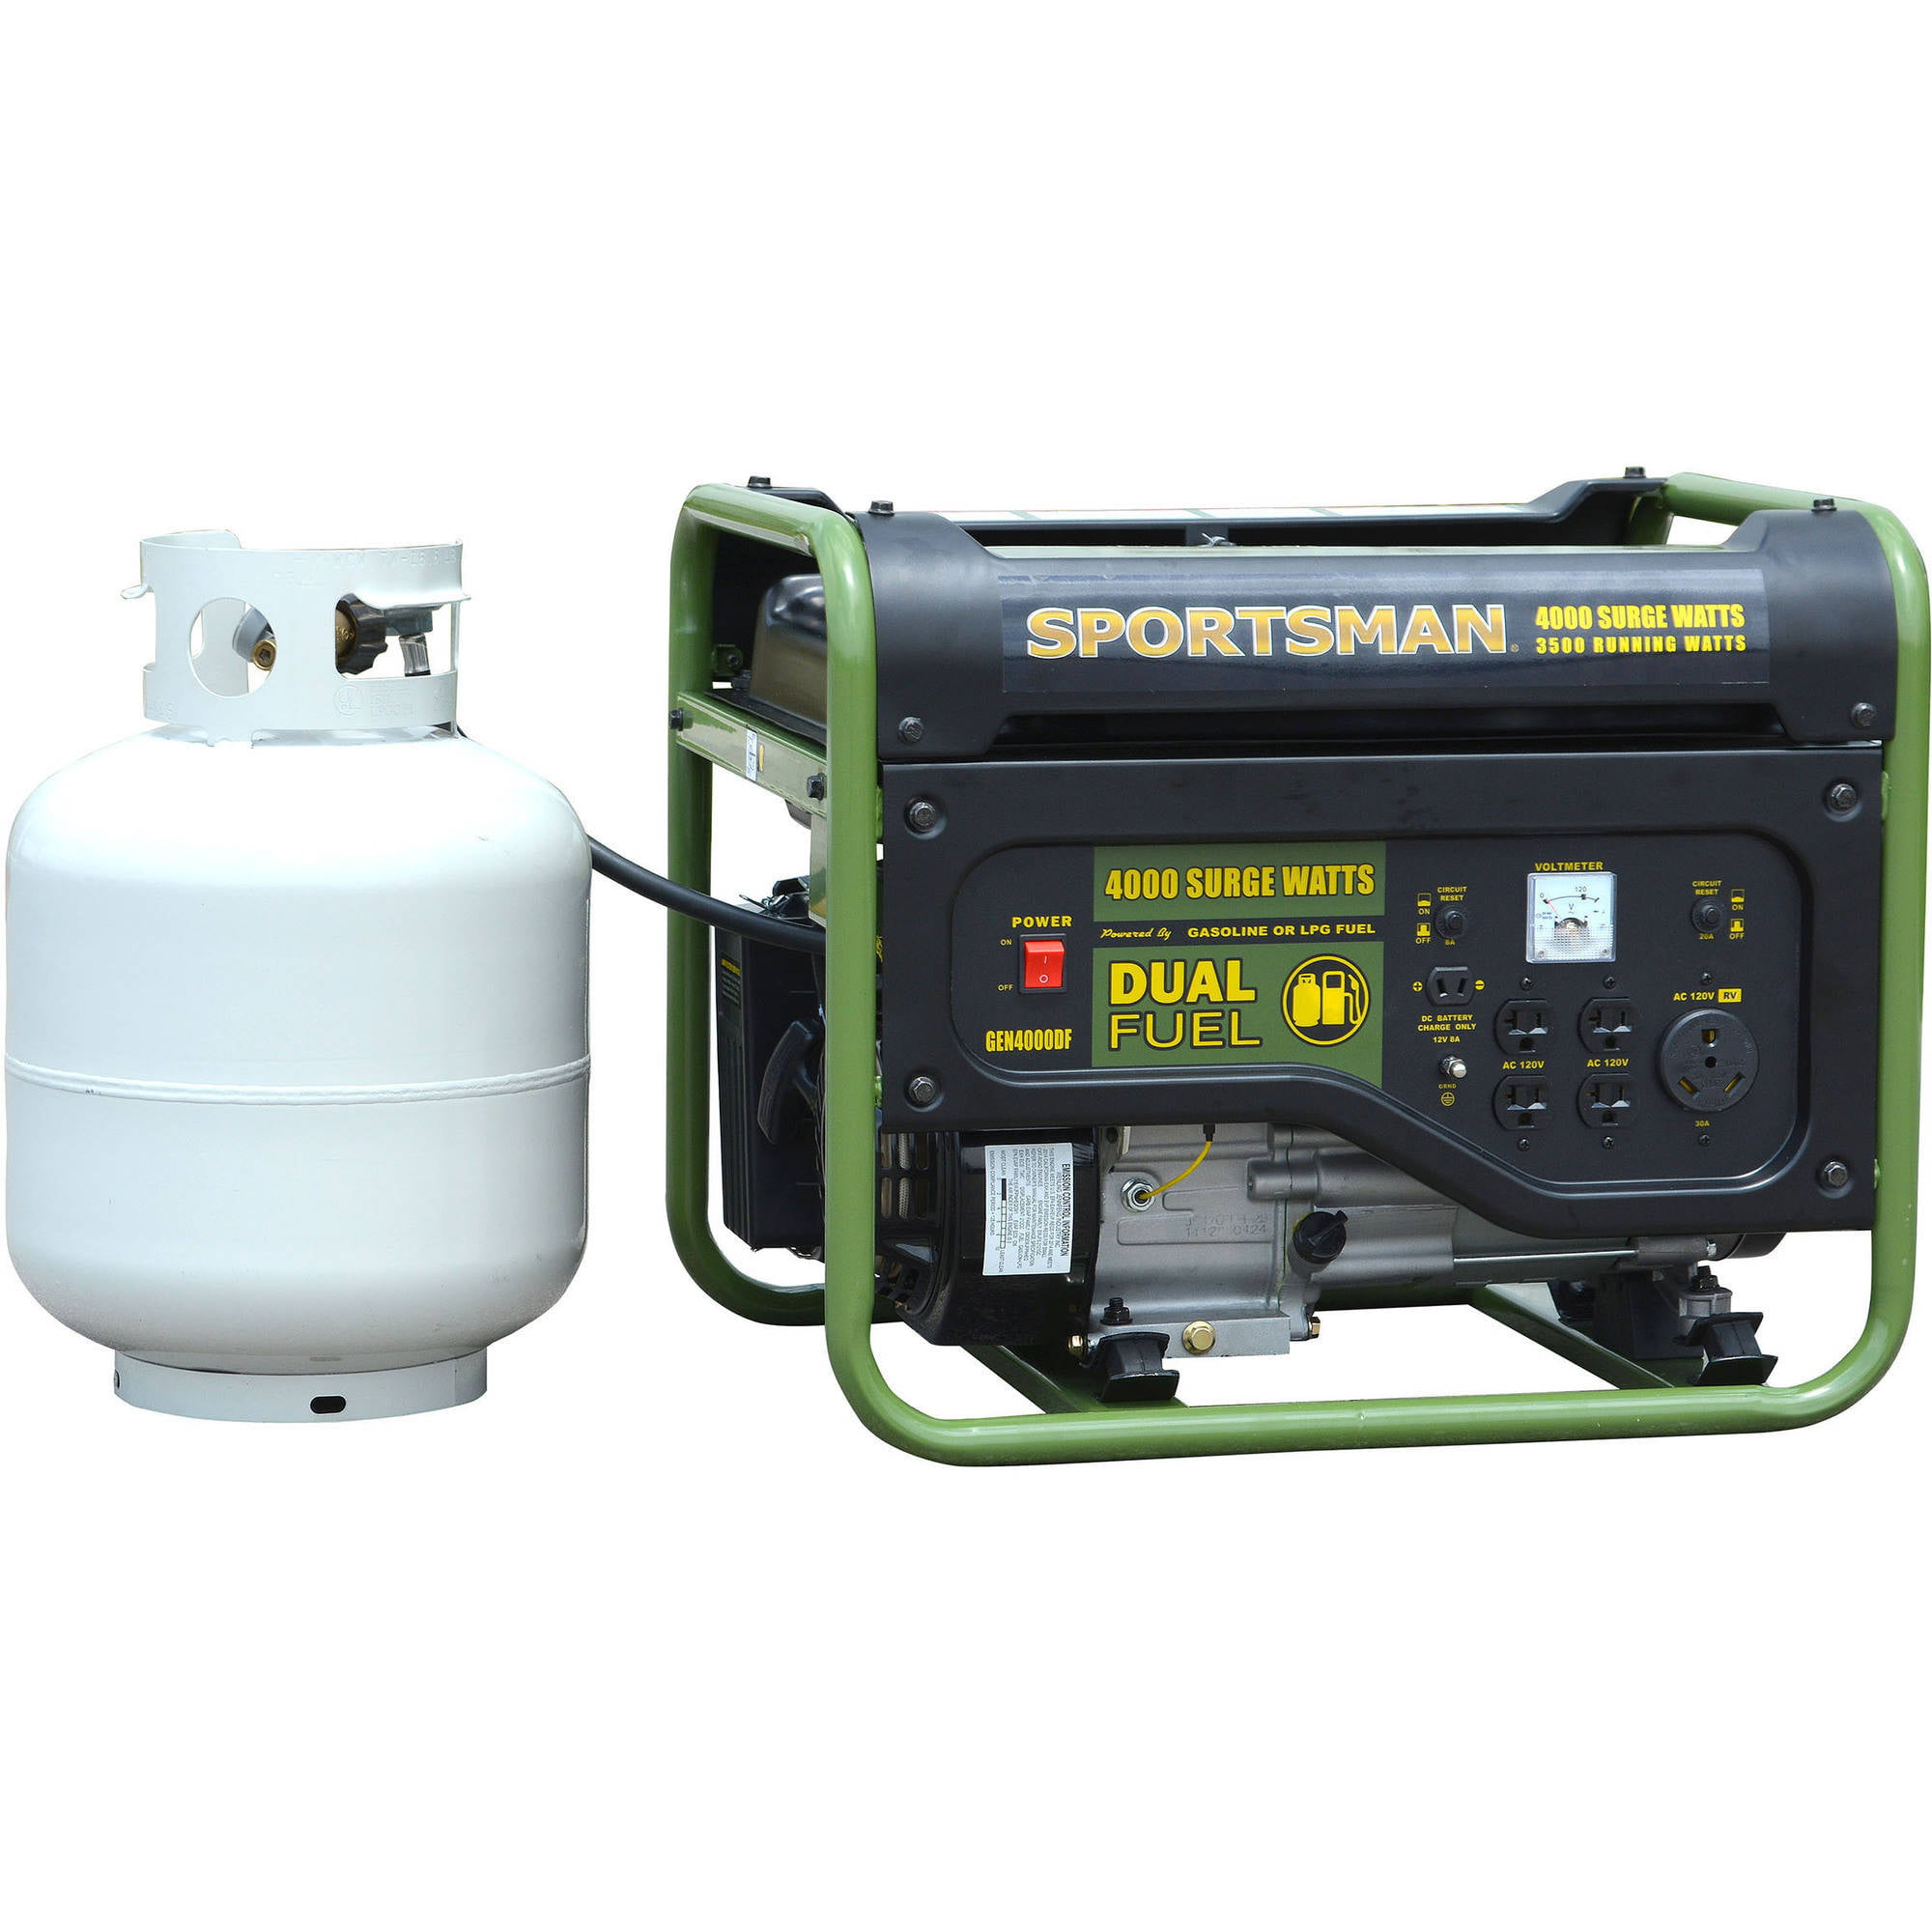 Sportsman 4000w Dual Fuel Generator Dc Shade Motors Can The Polarity Be Reversed With A Simple Switch